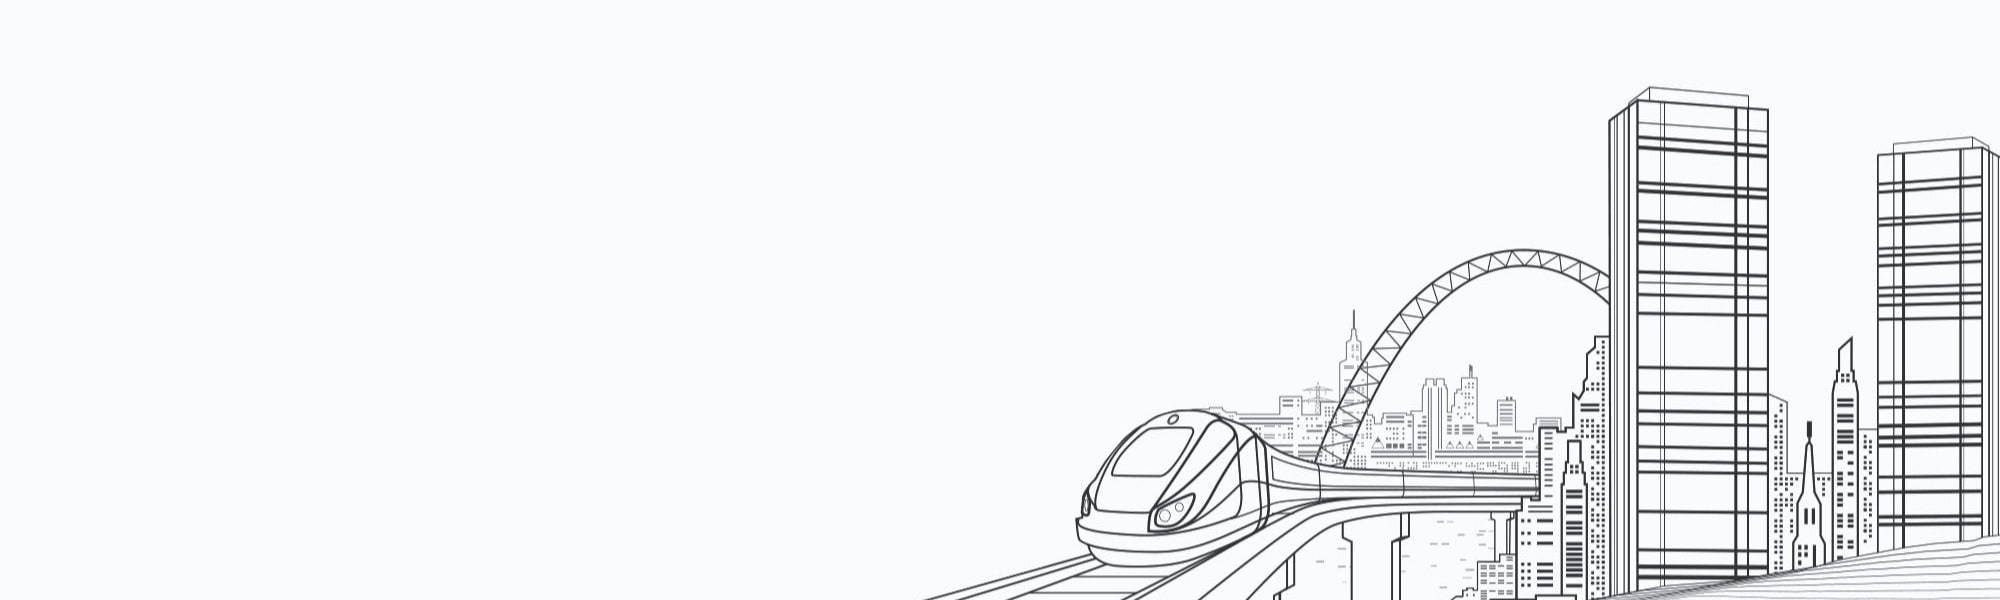 Banner image of line drawn cityscape with train